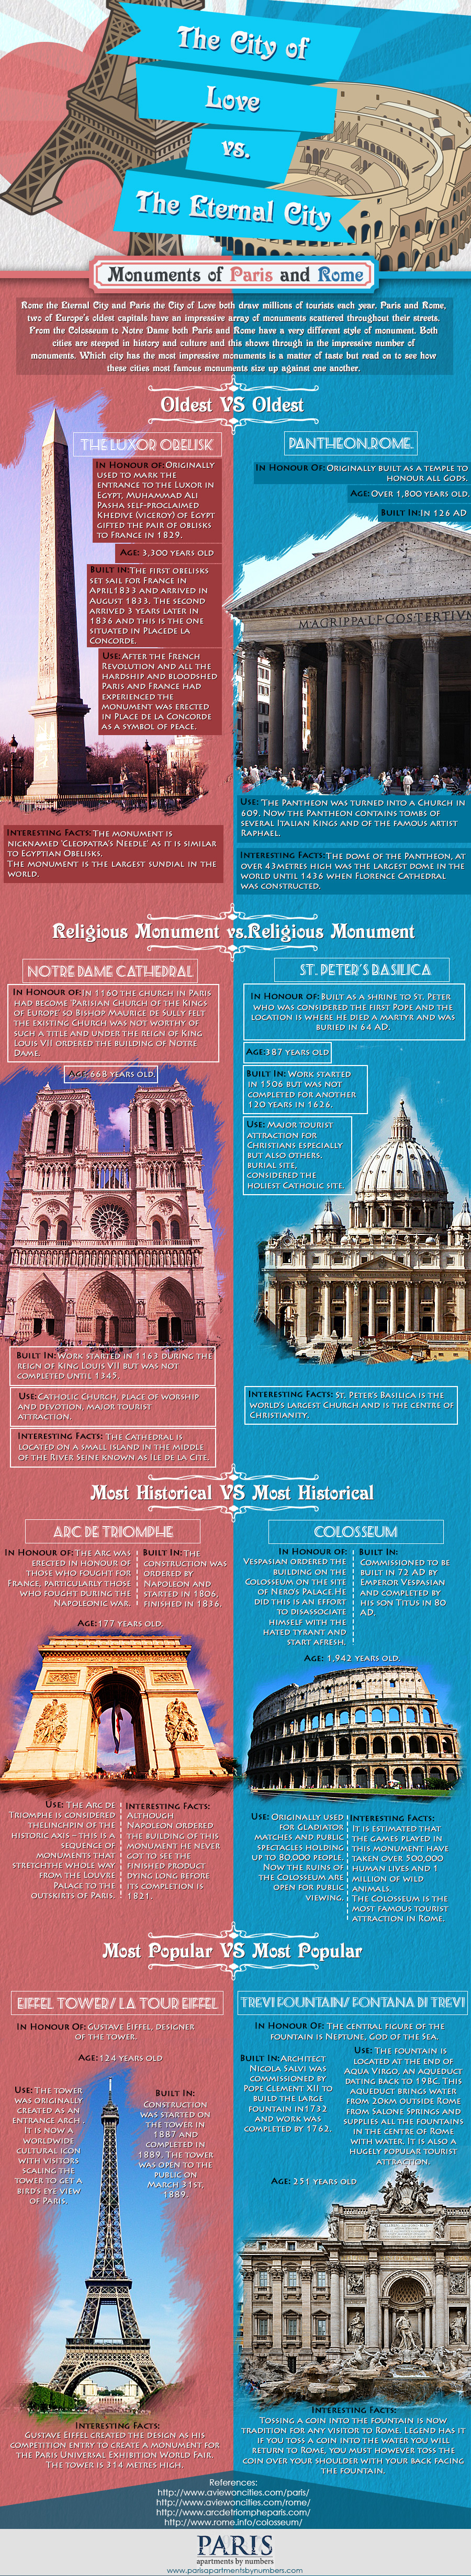 Paris-vs.-Rome